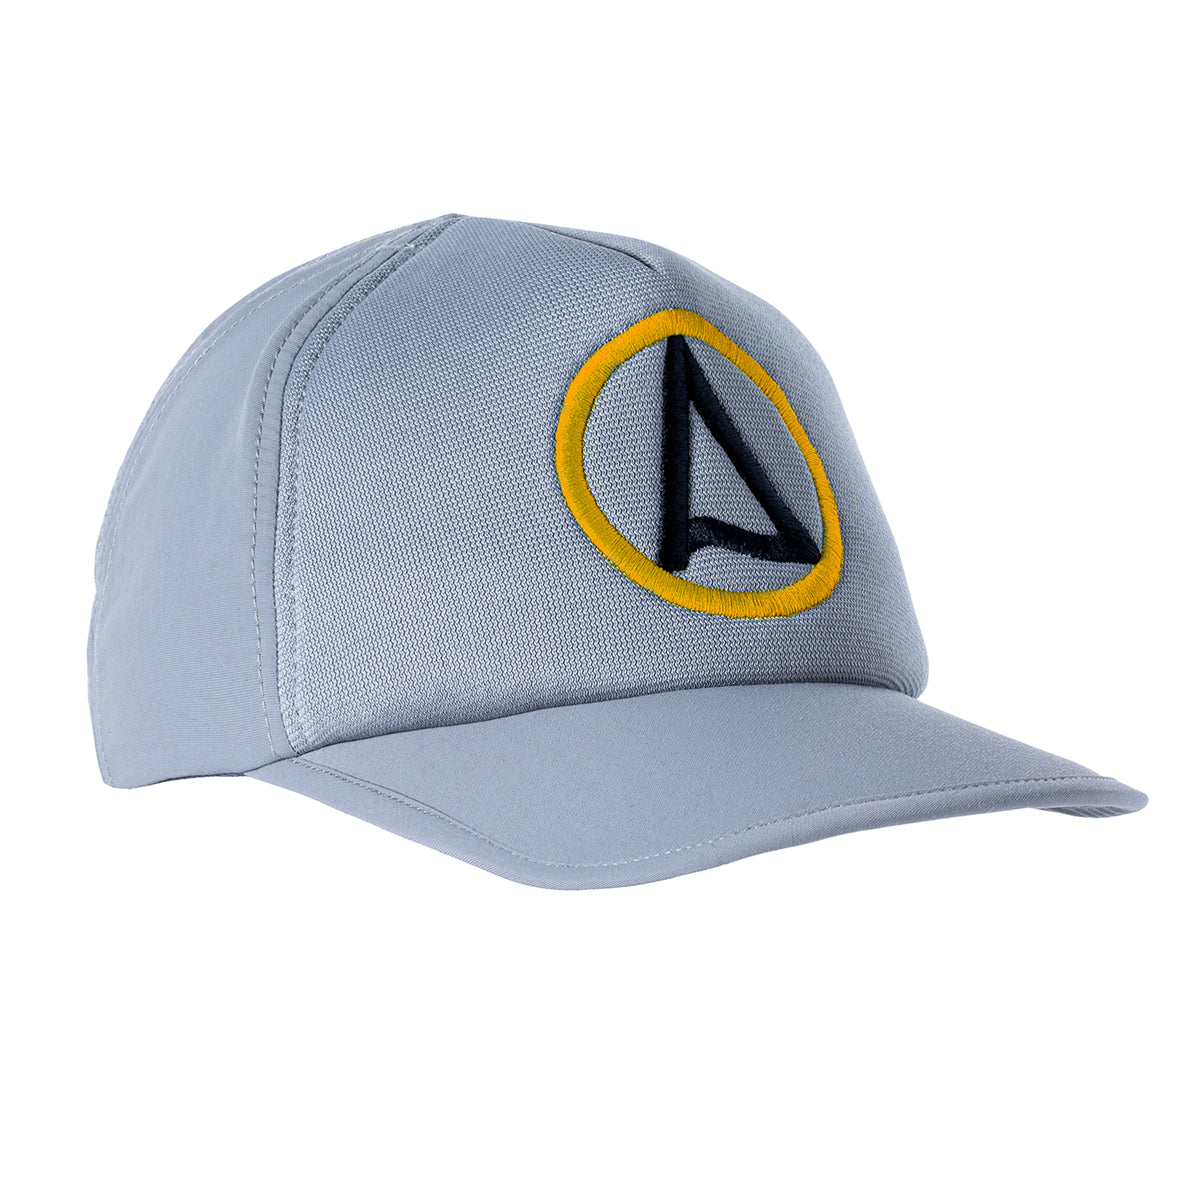 Kaiola Surf Hat - Misty Grey with Yellow